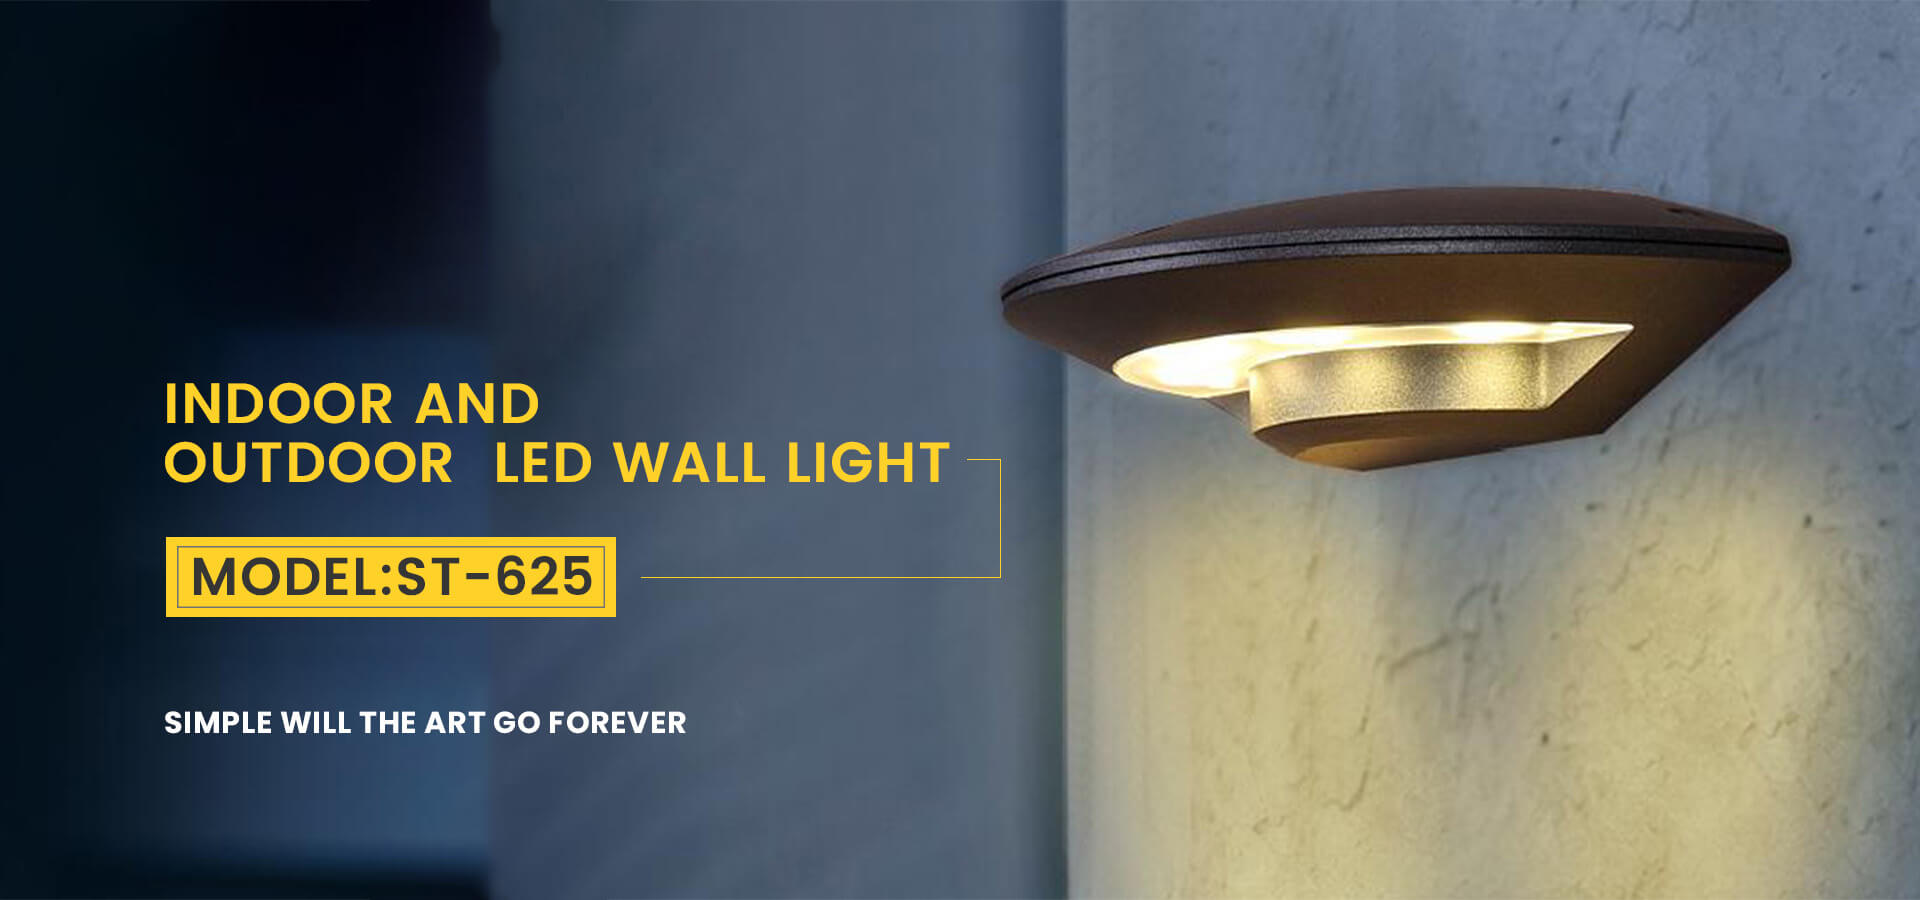 INDOOR AND OUTDOOR LED WALL LIGHT